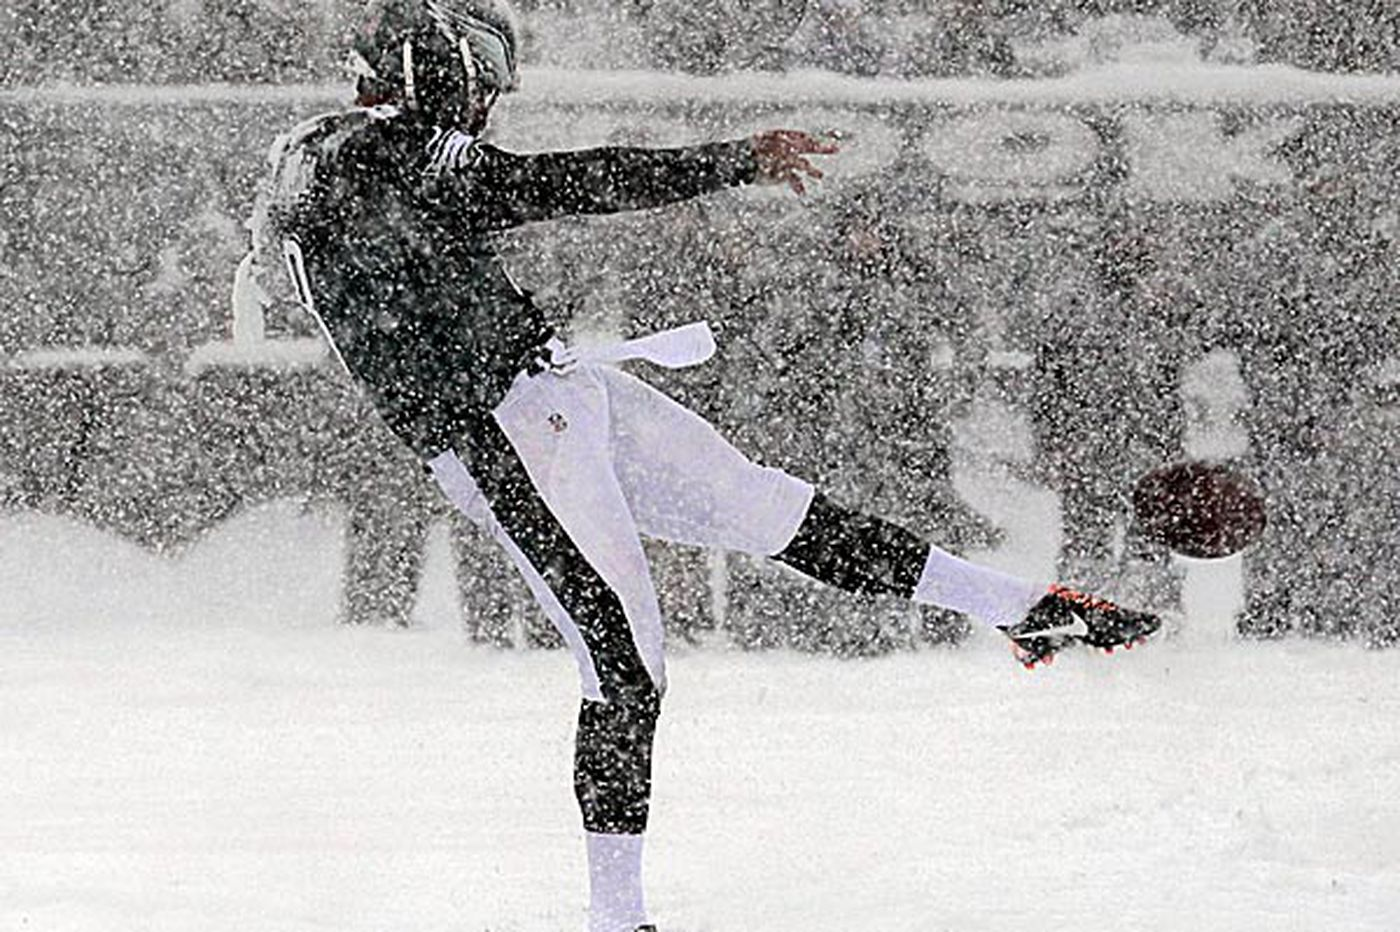 'Inexcusable' day for Birds' coverage teams